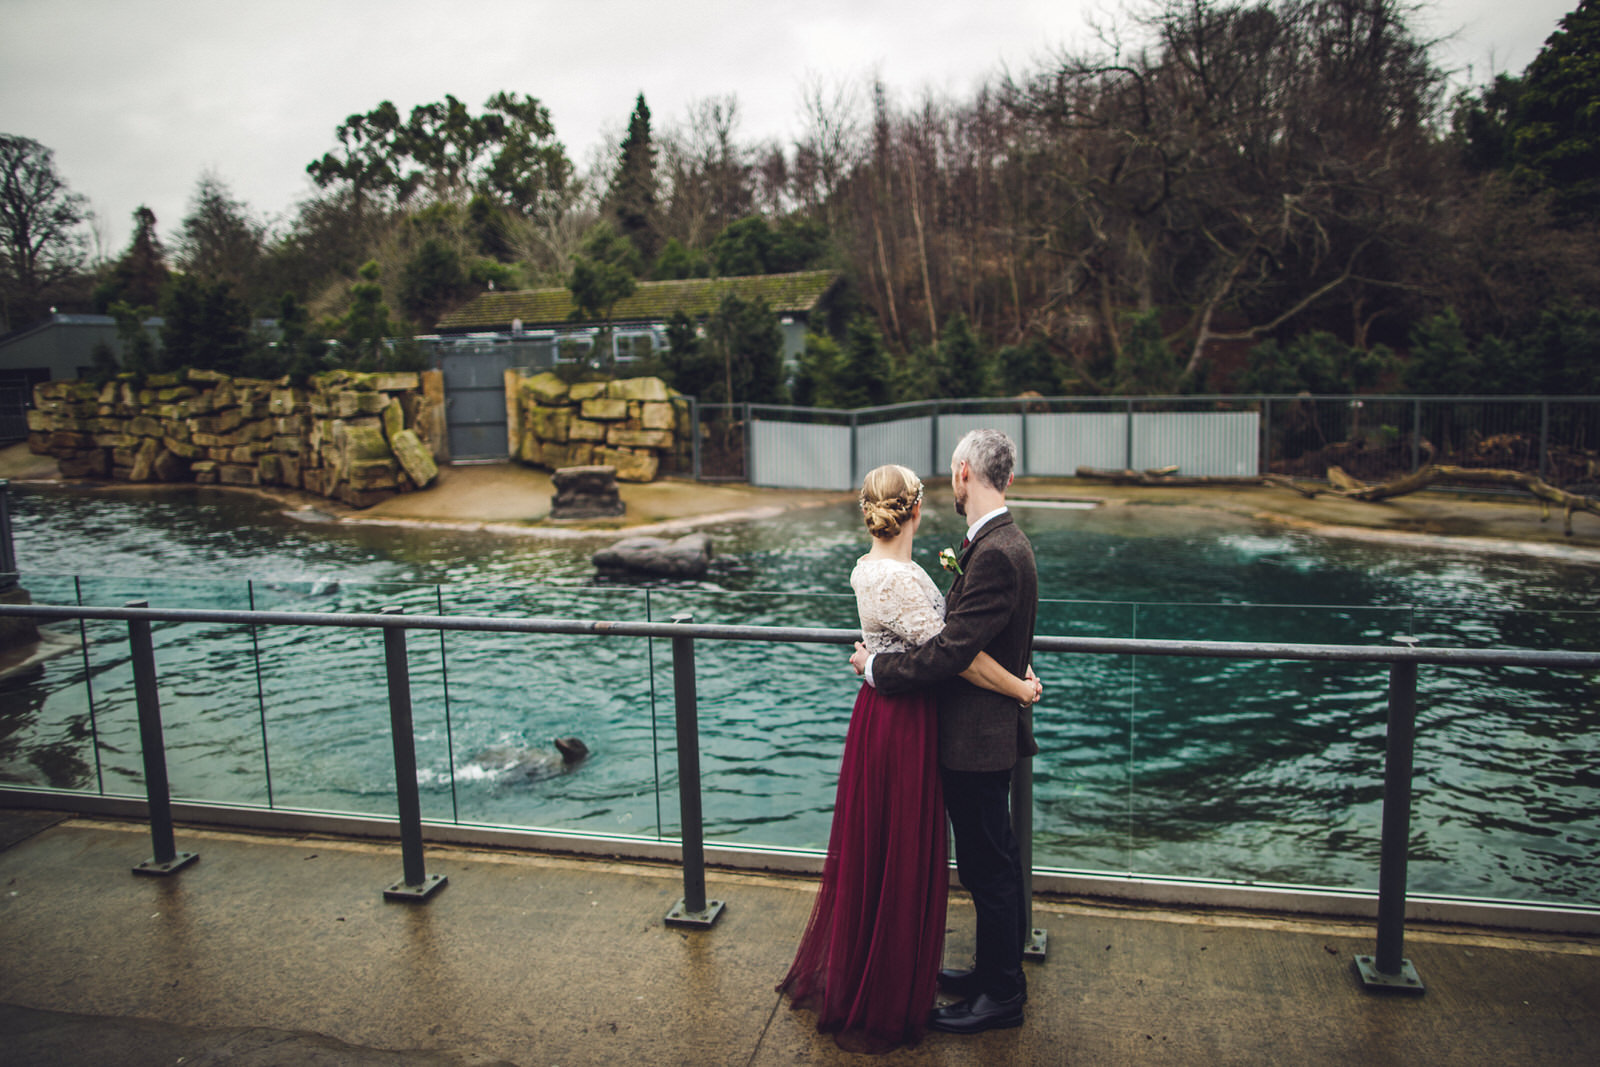 Roger_kenny-wedding-photographer-wicklow-dublin-zoo_066.jpg